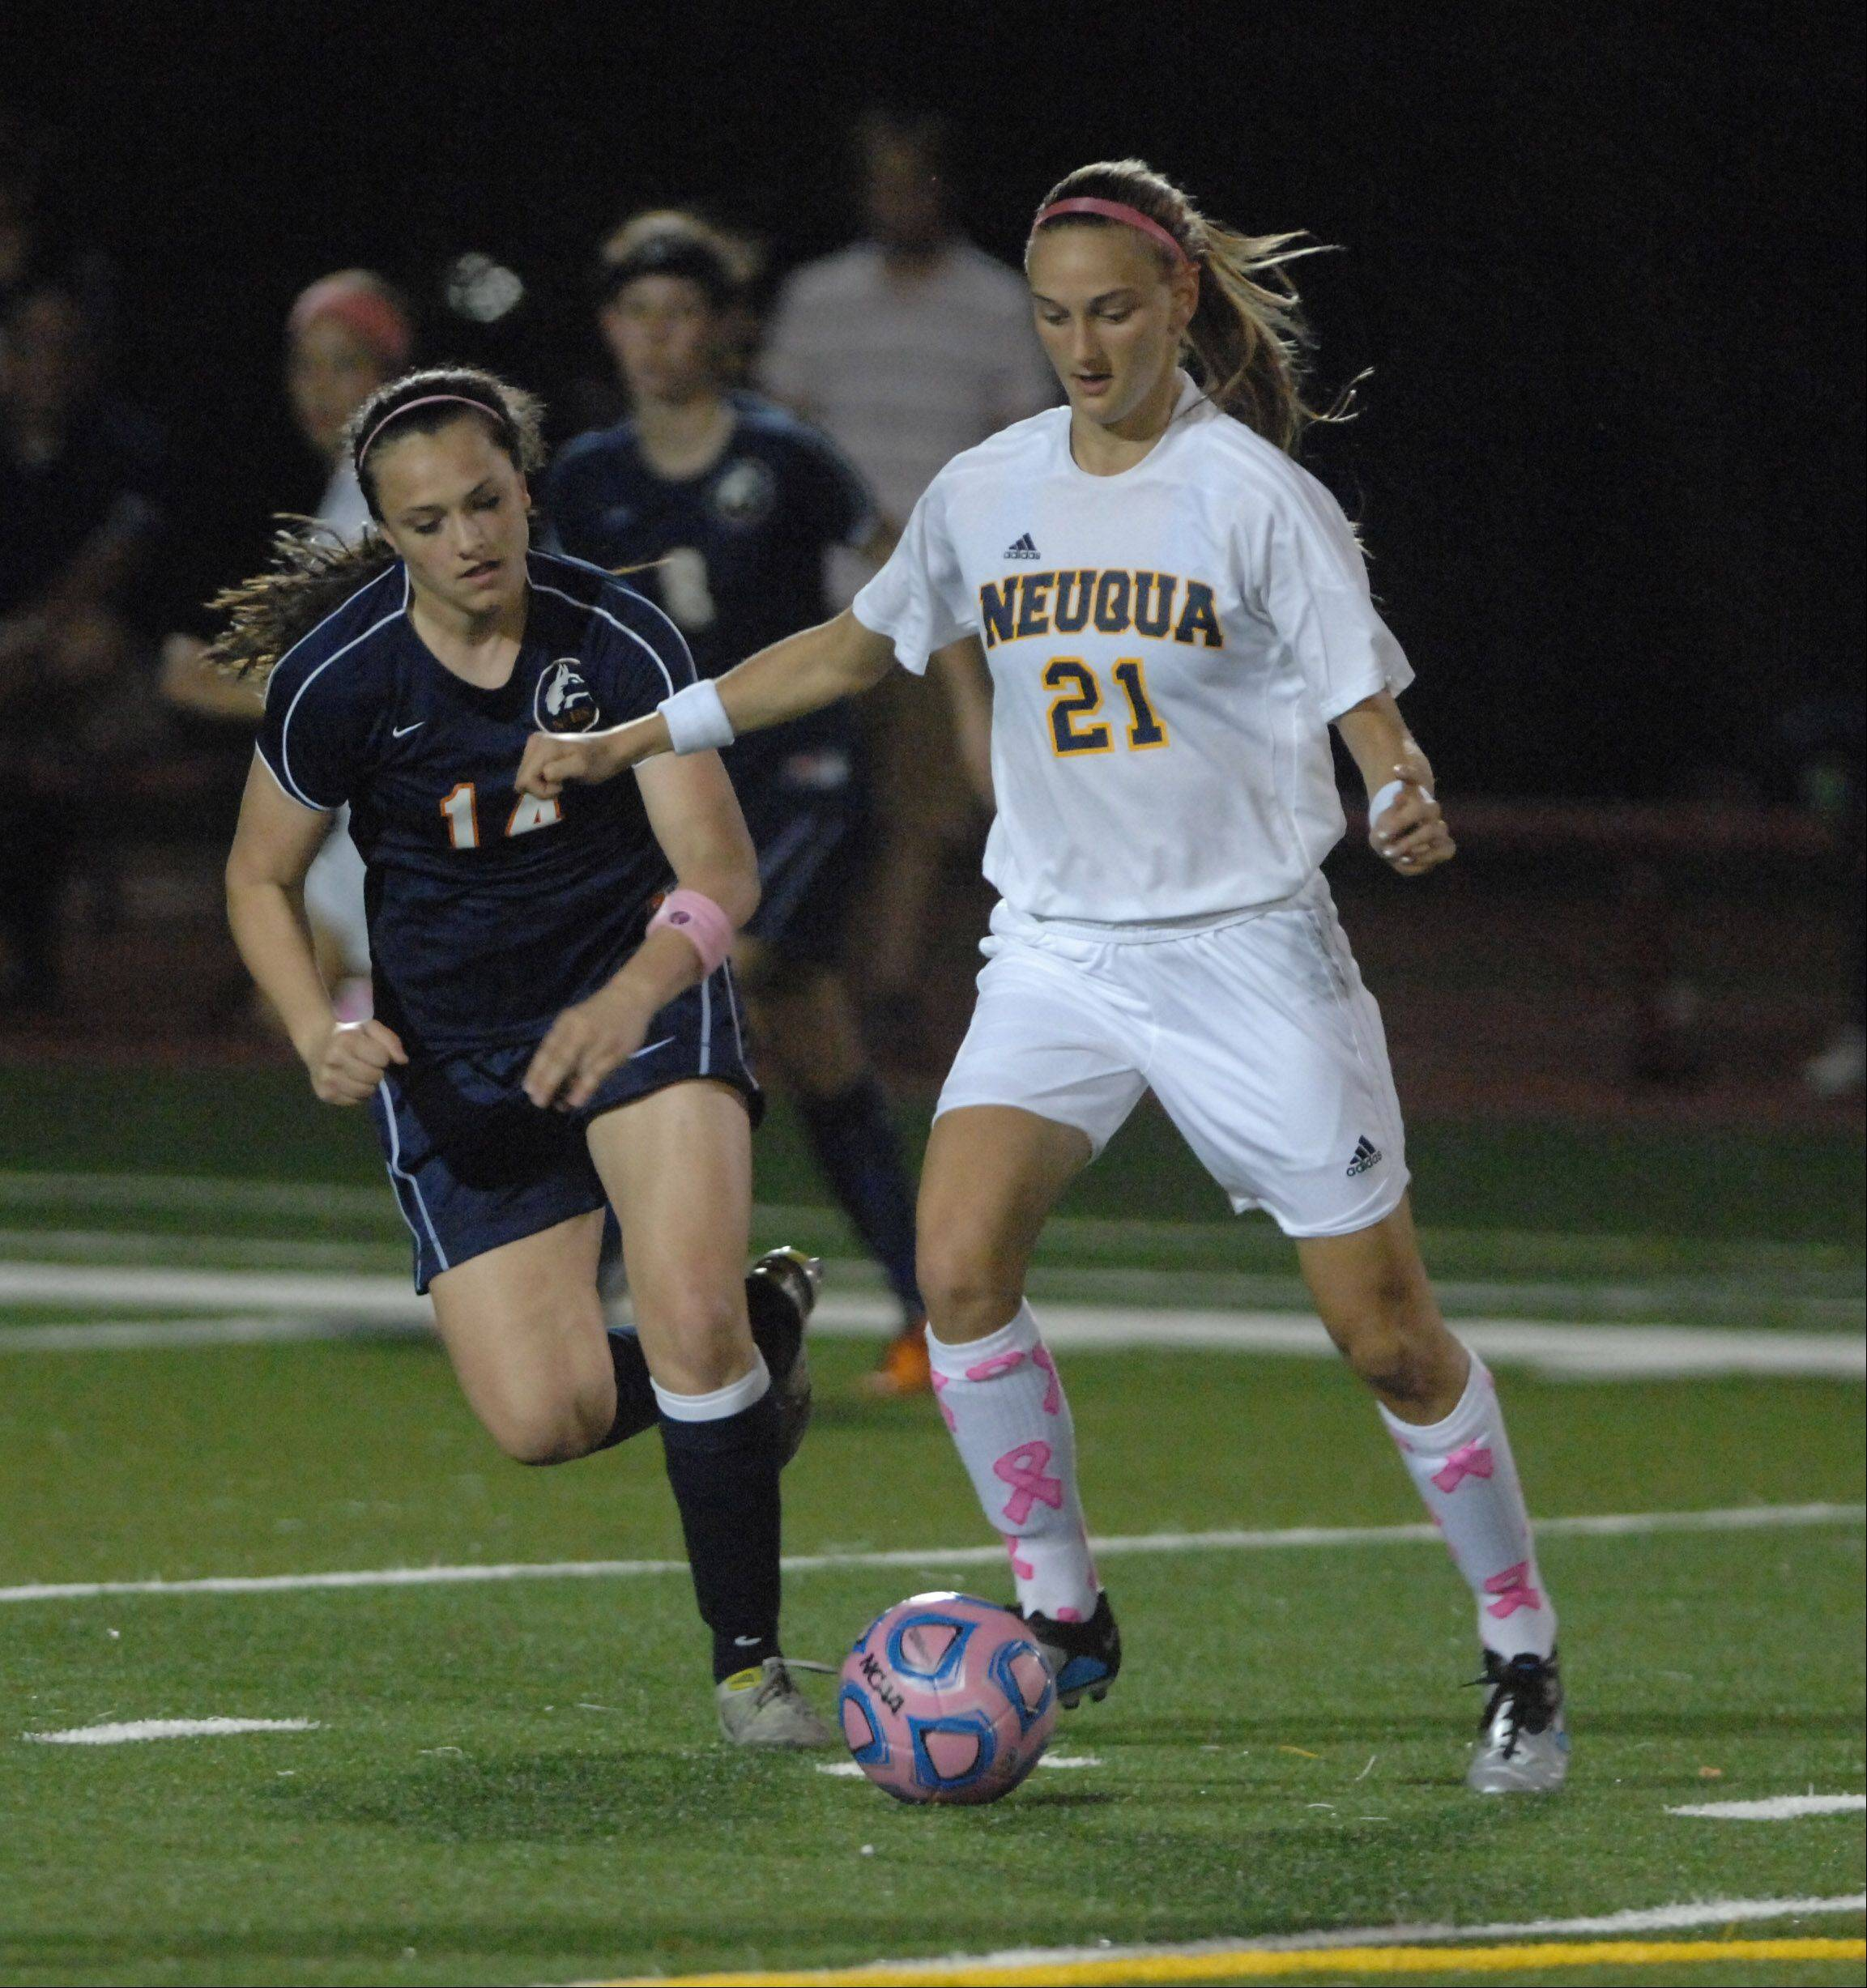 Paul Michna/pmichna@dailyherald.com � Christa Szalach of Naperville North,left, and Gianna Dal Pozzo of Neuqua play in the Naperville North vs. Neuqua Valley girls soccer game at North Central College Wednesday.